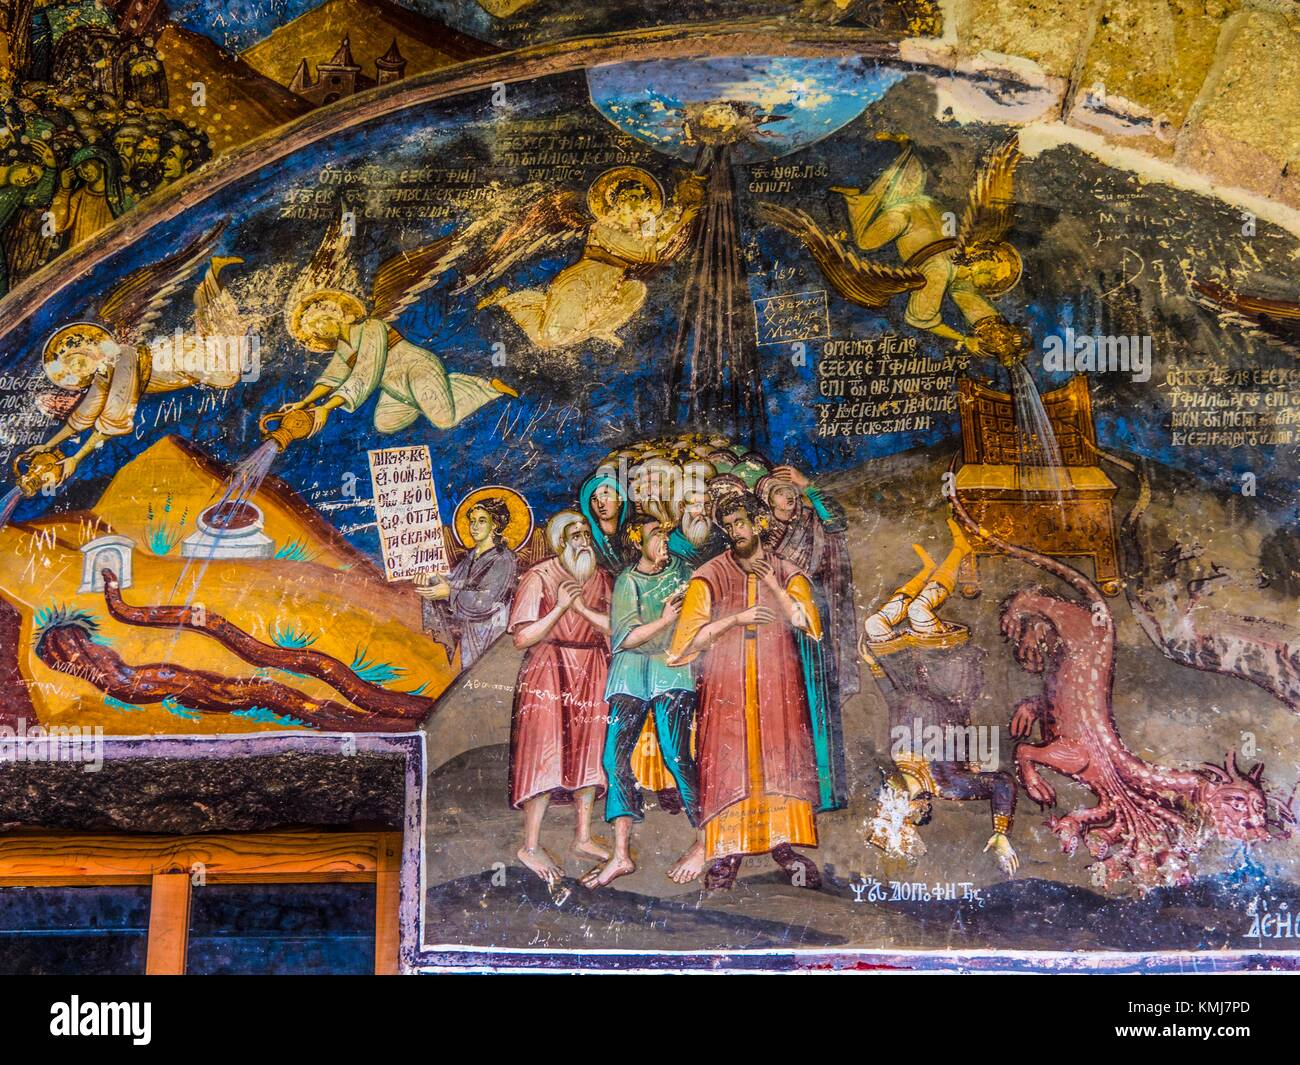 Albania, Voskopojë- at Saint Athanasius church.Fresco of Constantin Berat, 1745. Representation of the Apocalypse. - Stock Image